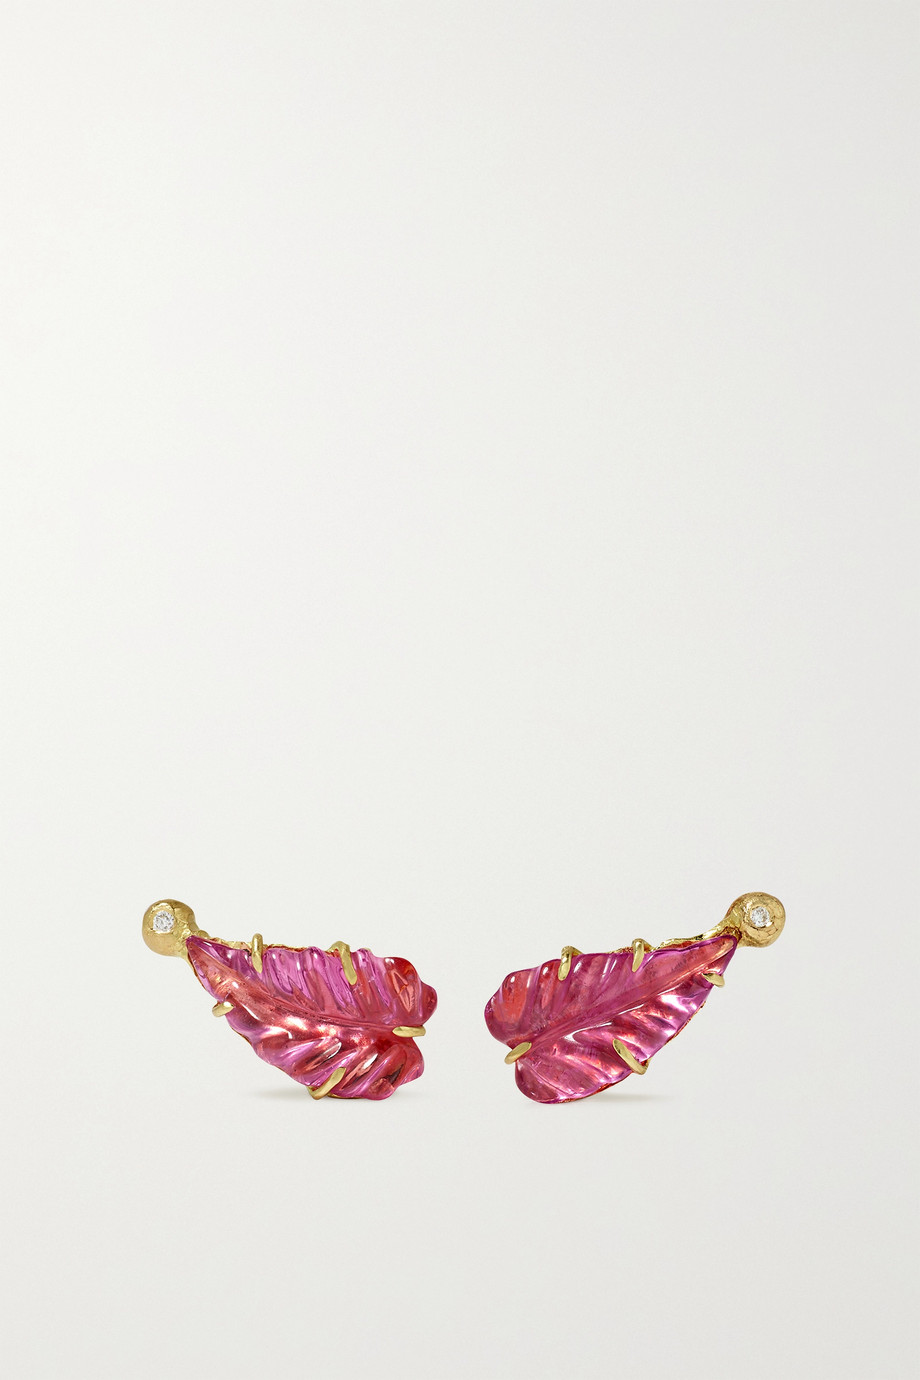 Brooke Gregson Boucles d'oreilles en or 18 carats, diamants et tourmalines Maya Leaf